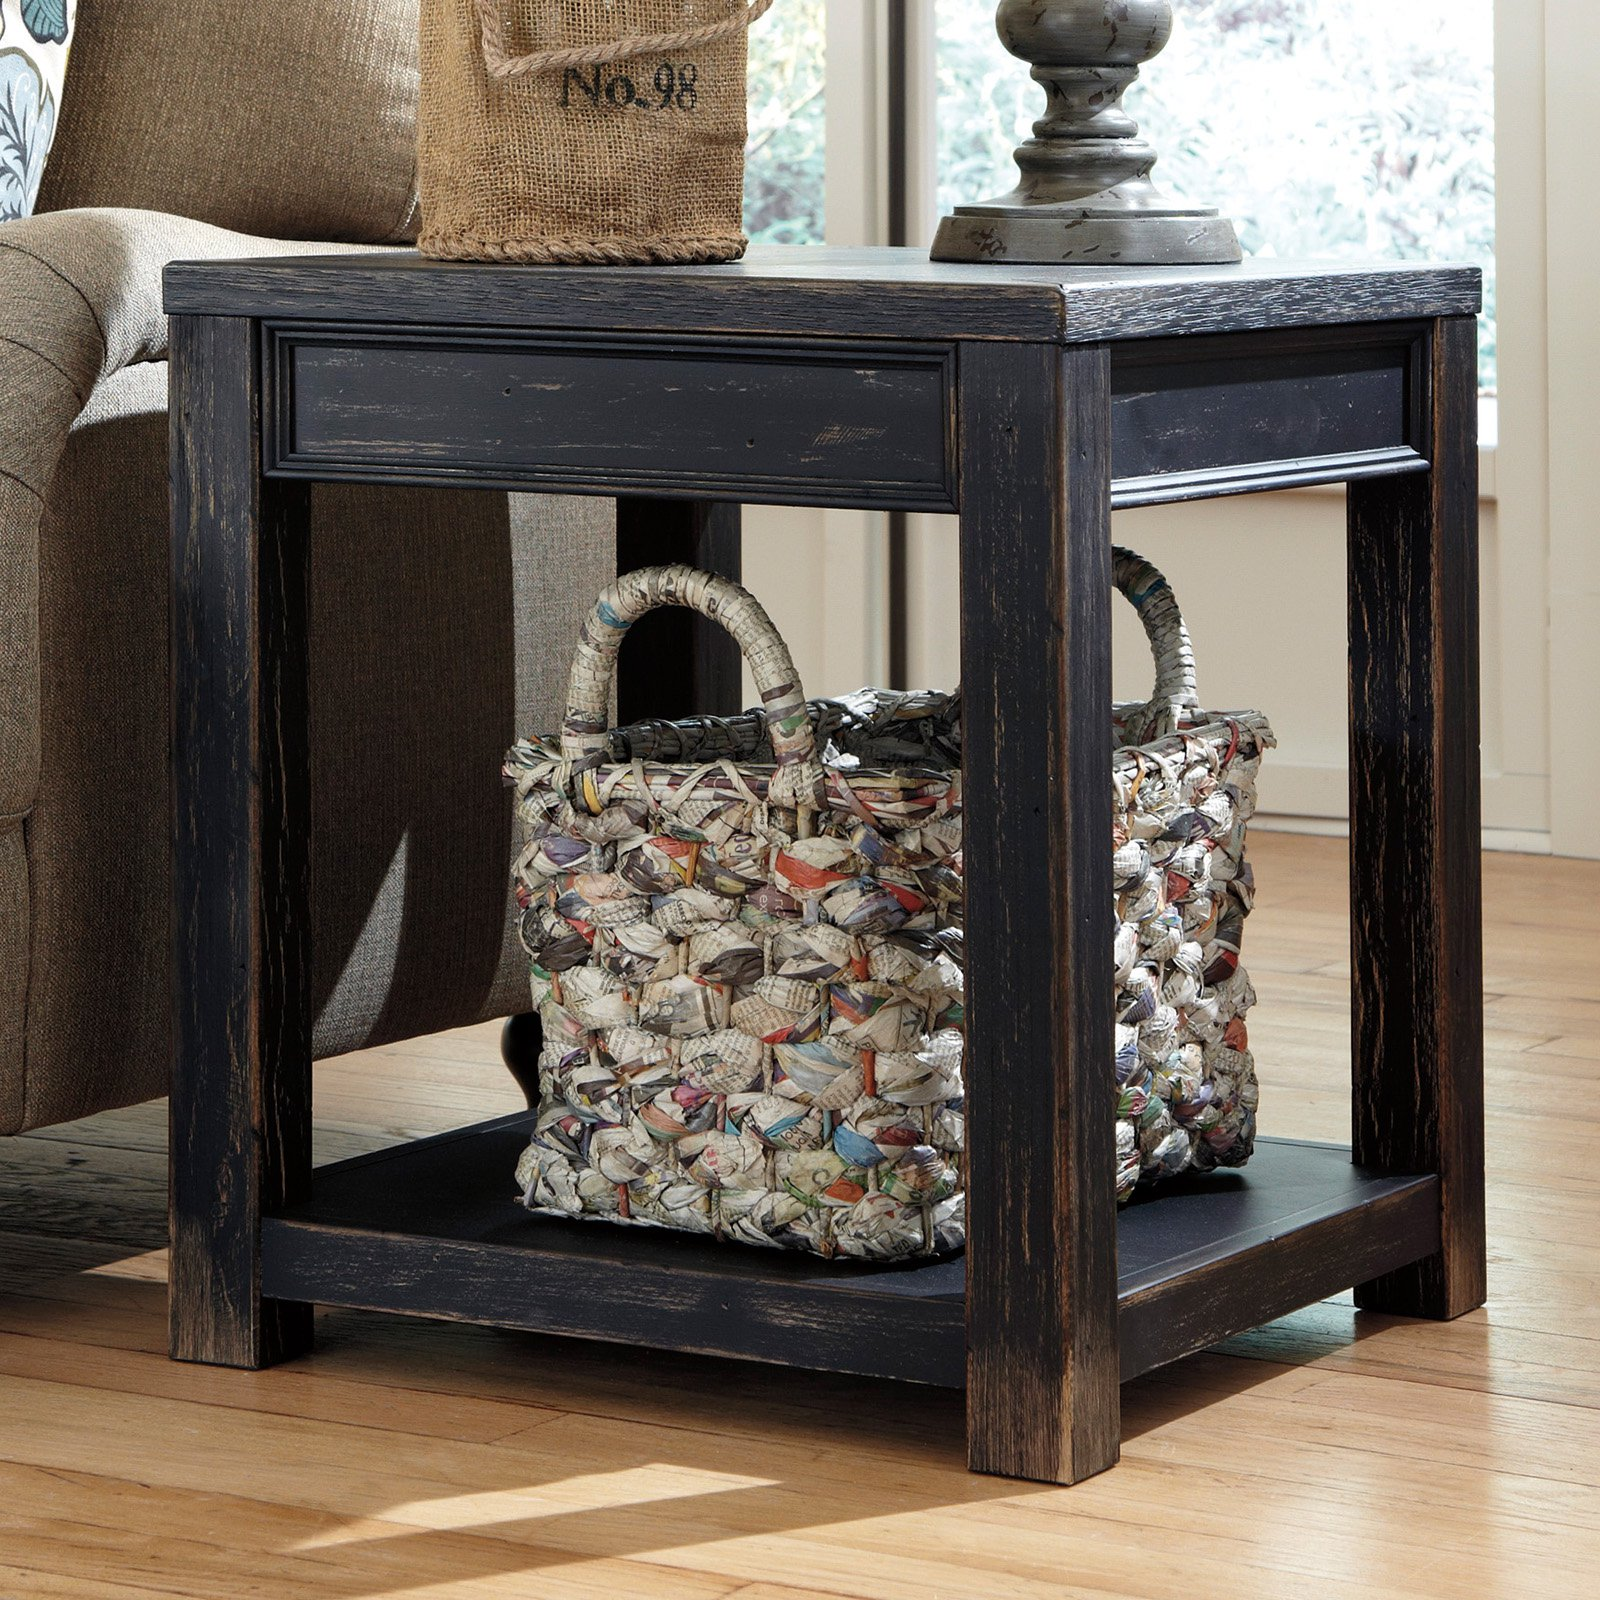 black end tables living room ideas signature design ashley gavelston square table furniture swivel chair decorative dog crates and kennels office accent wall color with brown sofa